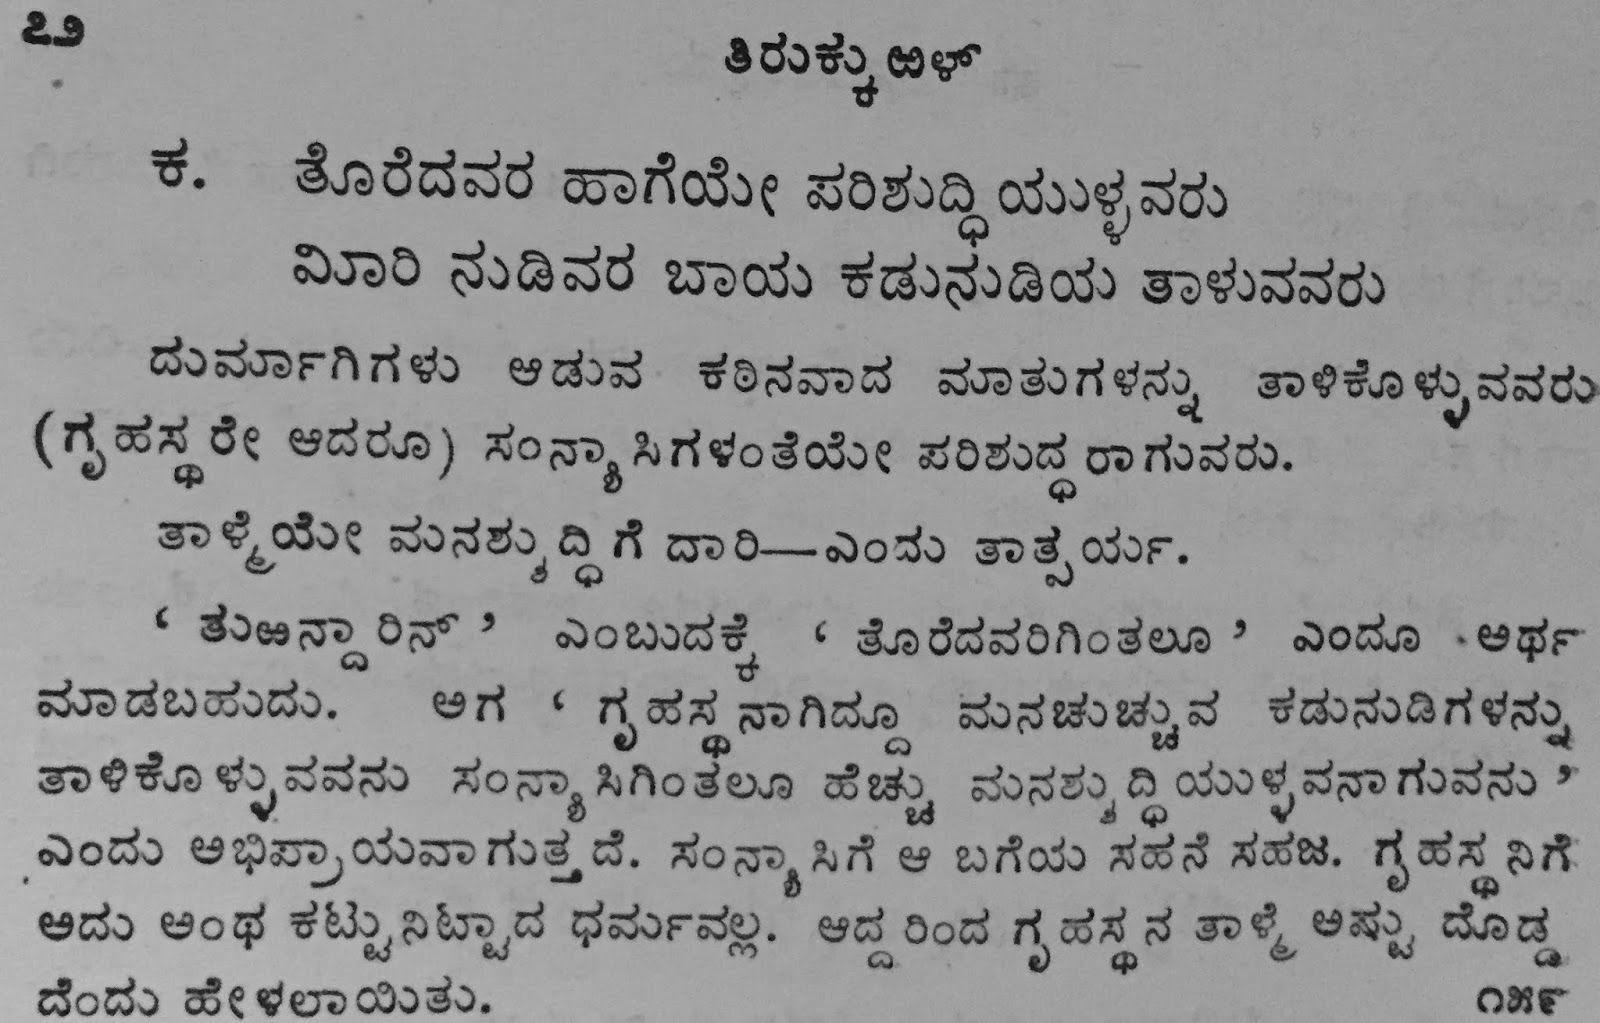 joint family essay in kannada Joint family essay in kannada information about the kannada alphabet and  language, which is spoken essay on joint family in telugu next essay on if i were  lost.